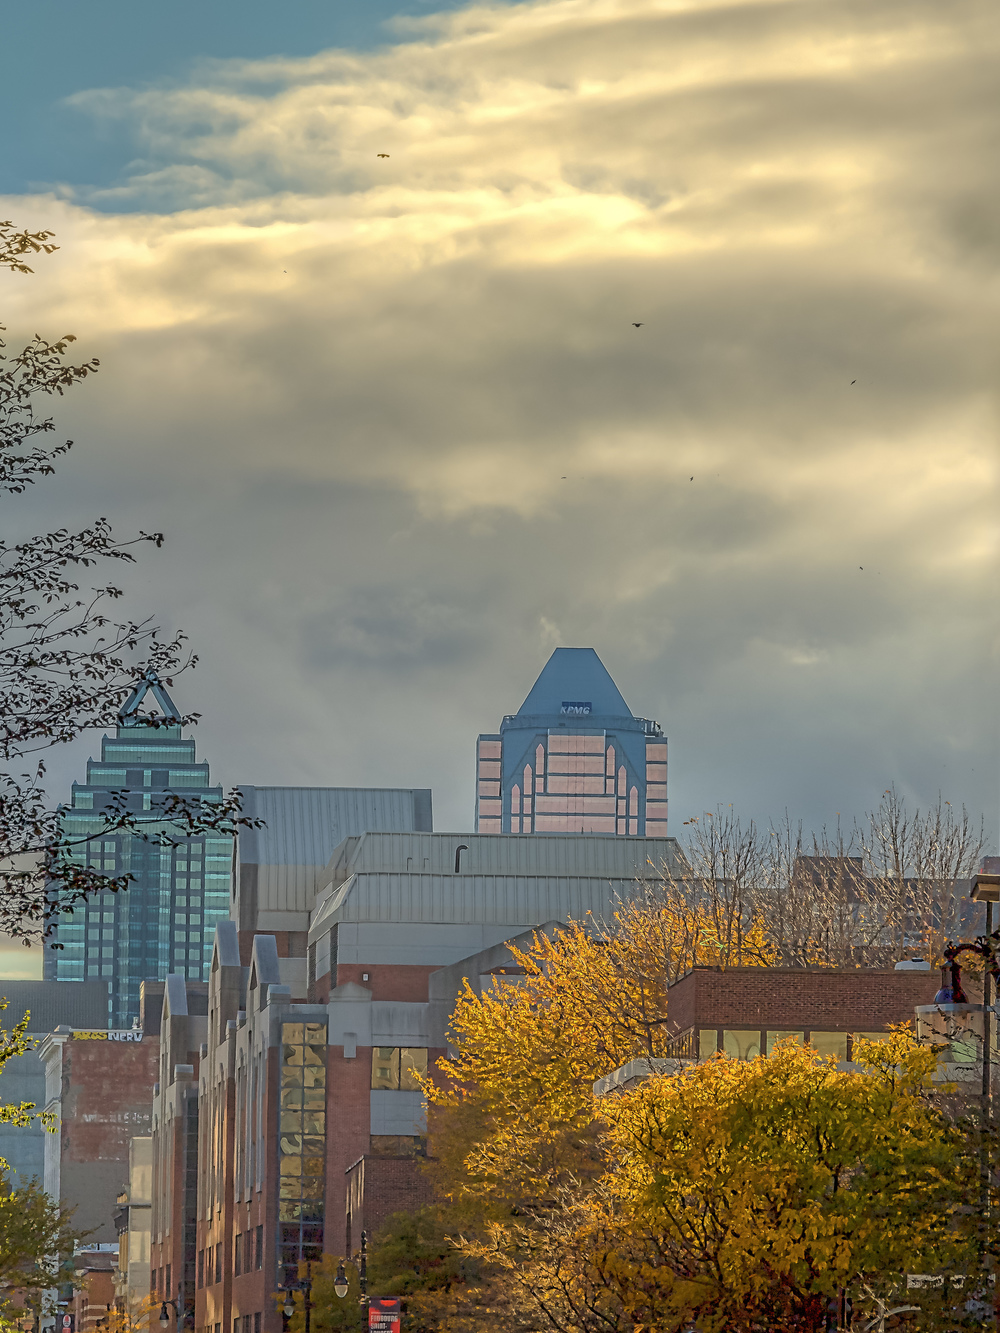 20141026_Photos Walk-Ste. Catherine E-St. Hubert_IMG_9746_7_8tonemapped-M.jpg